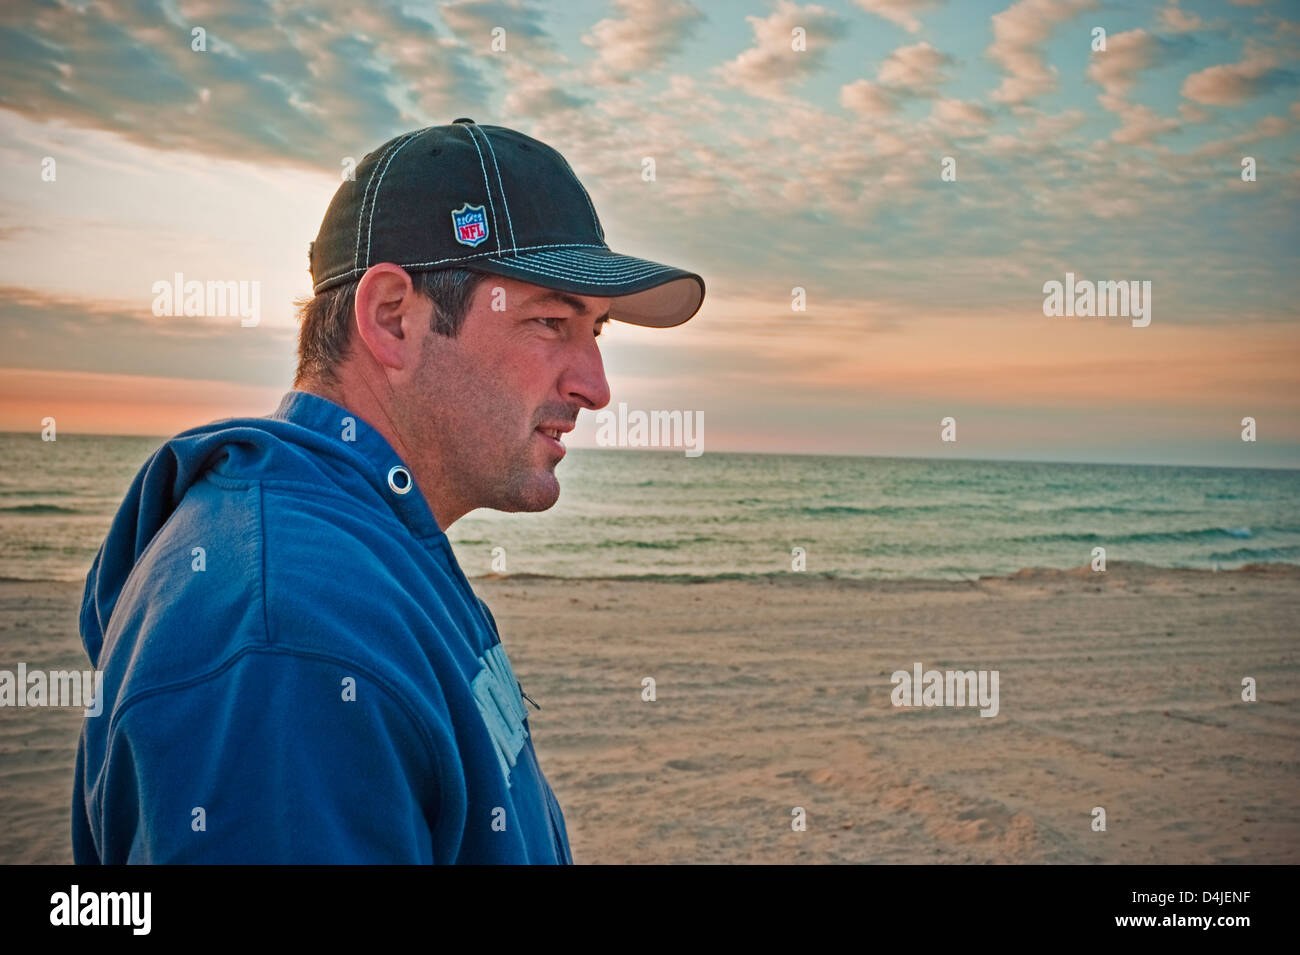 03d819745fe Man wear baseball cap and sweat shirt enjoying an autumn evening on a Lake  Michigan beach near Ludington